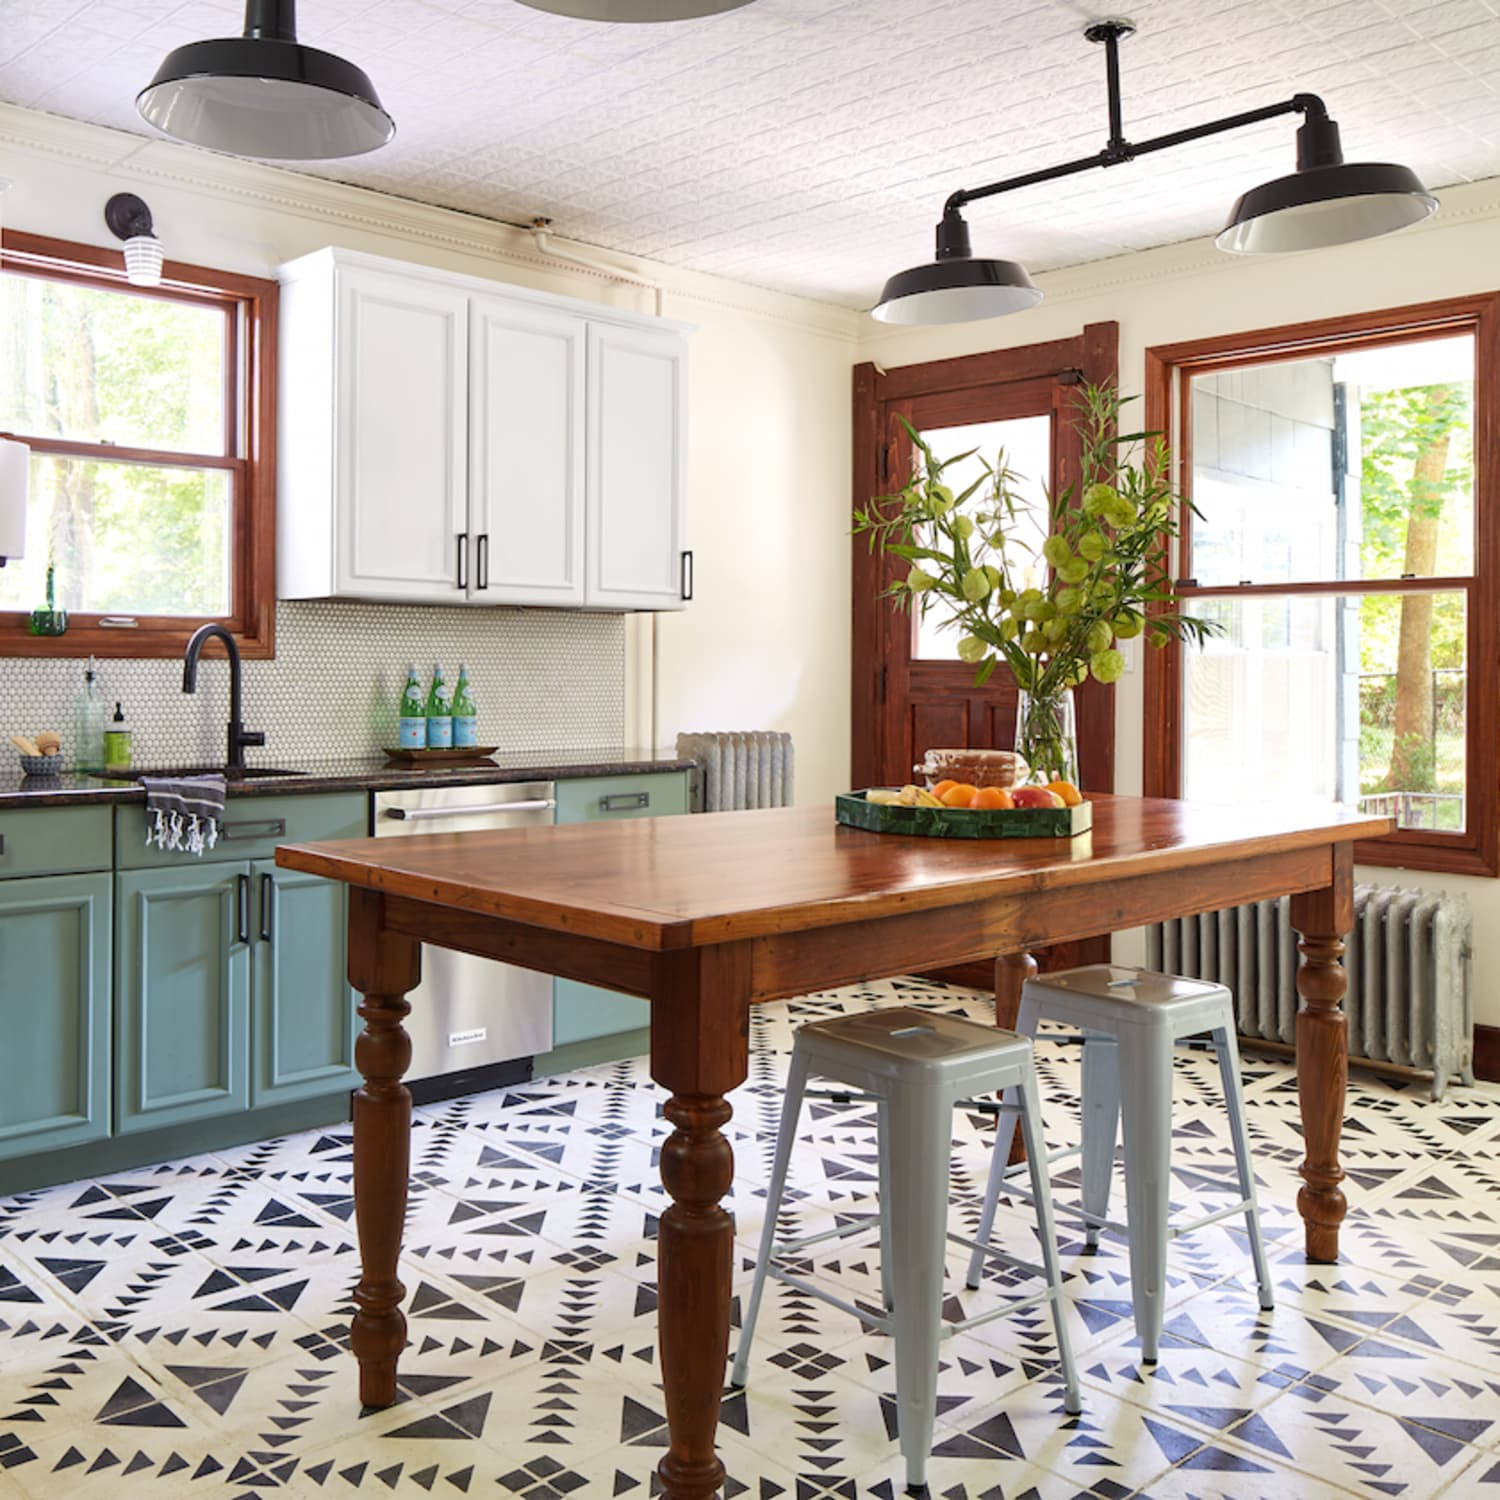 The siite features resene ezypaint virtual painting and resene techspec virtual specification software. Yes You Can Paint Your Entire Kitchen With Chalk Paint Kitchn